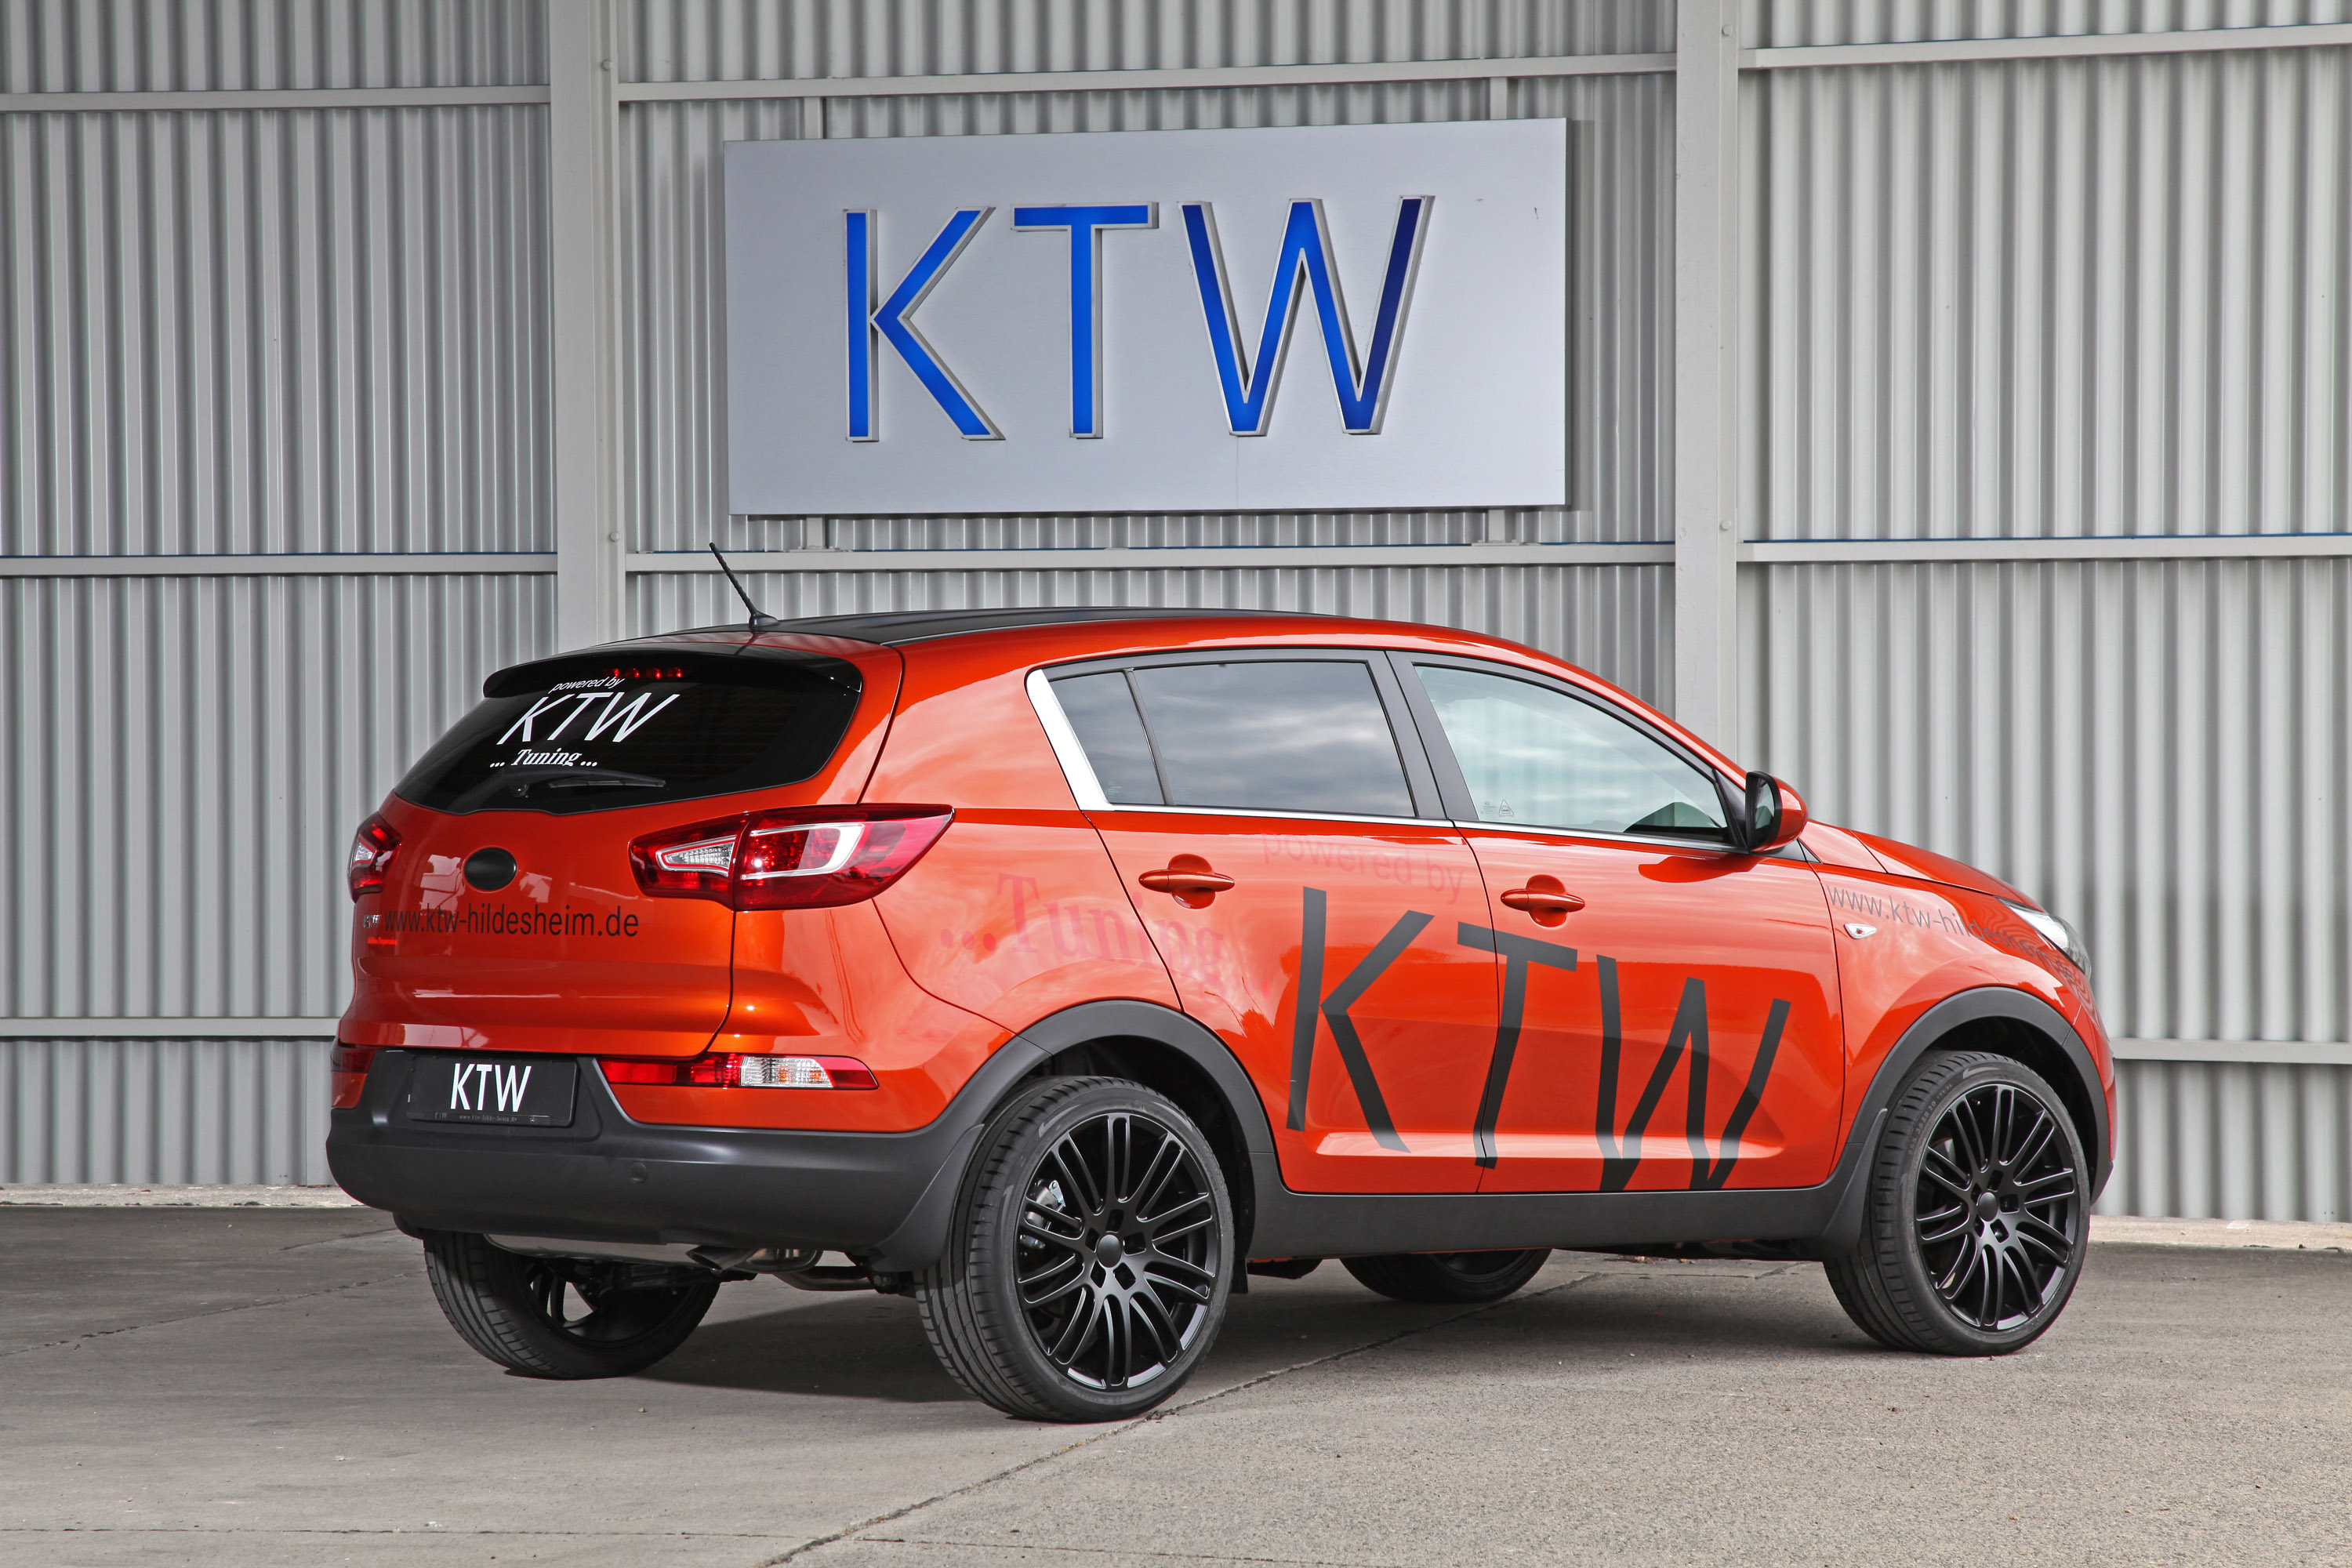 ktw tuning gives new look to kia sportage. Black Bedroom Furniture Sets. Home Design Ideas